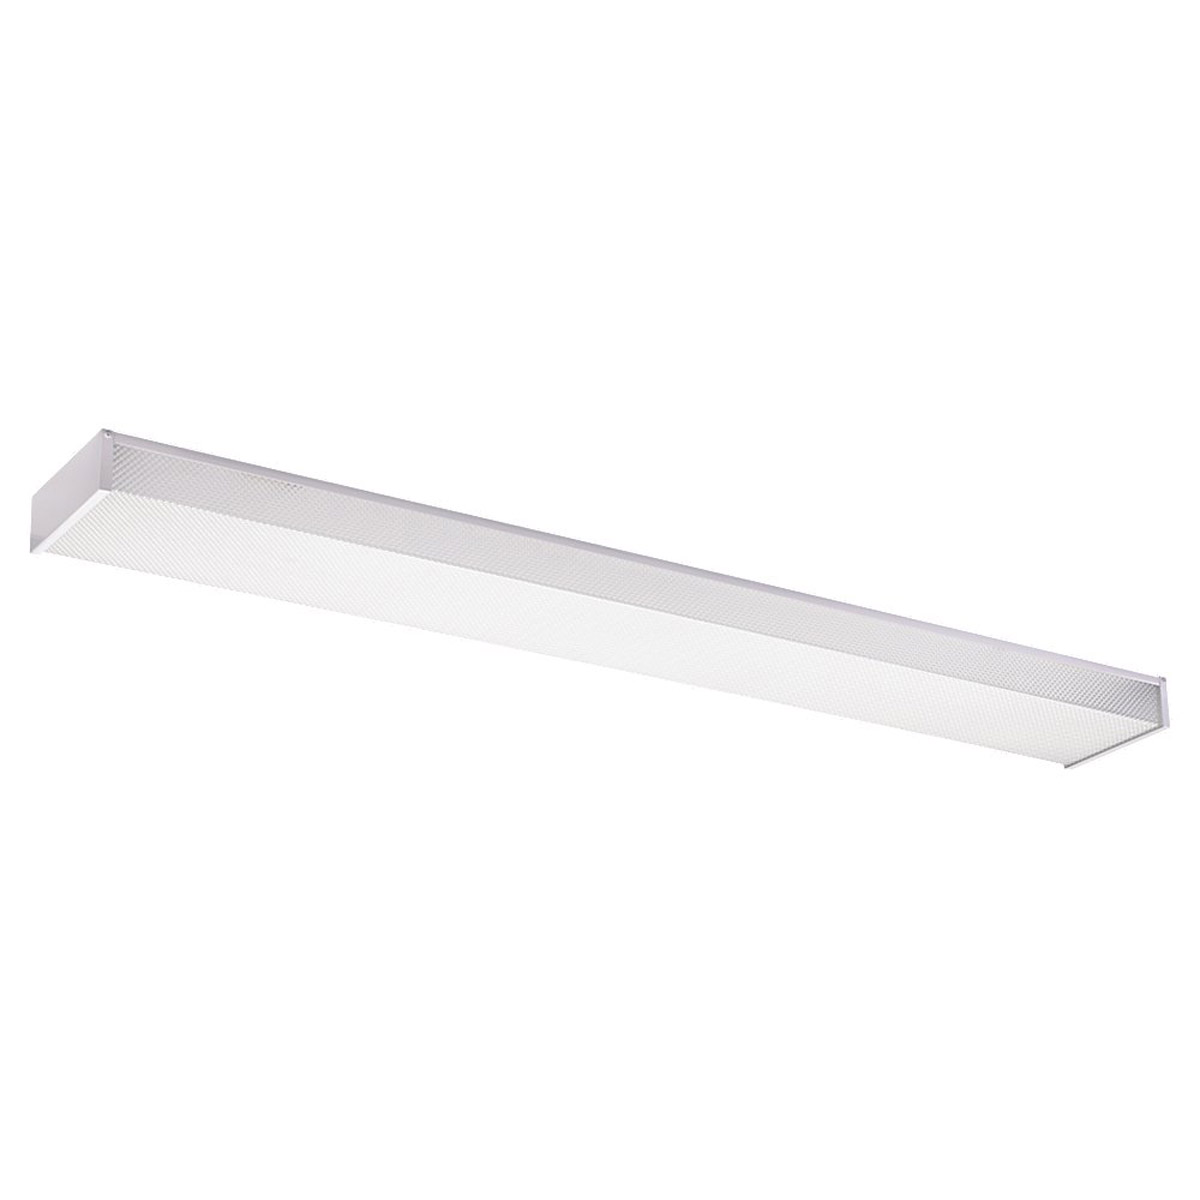 Sea Gull Lighting Signature 2 Light Fluorescent Ceiling in White 59032LE-15